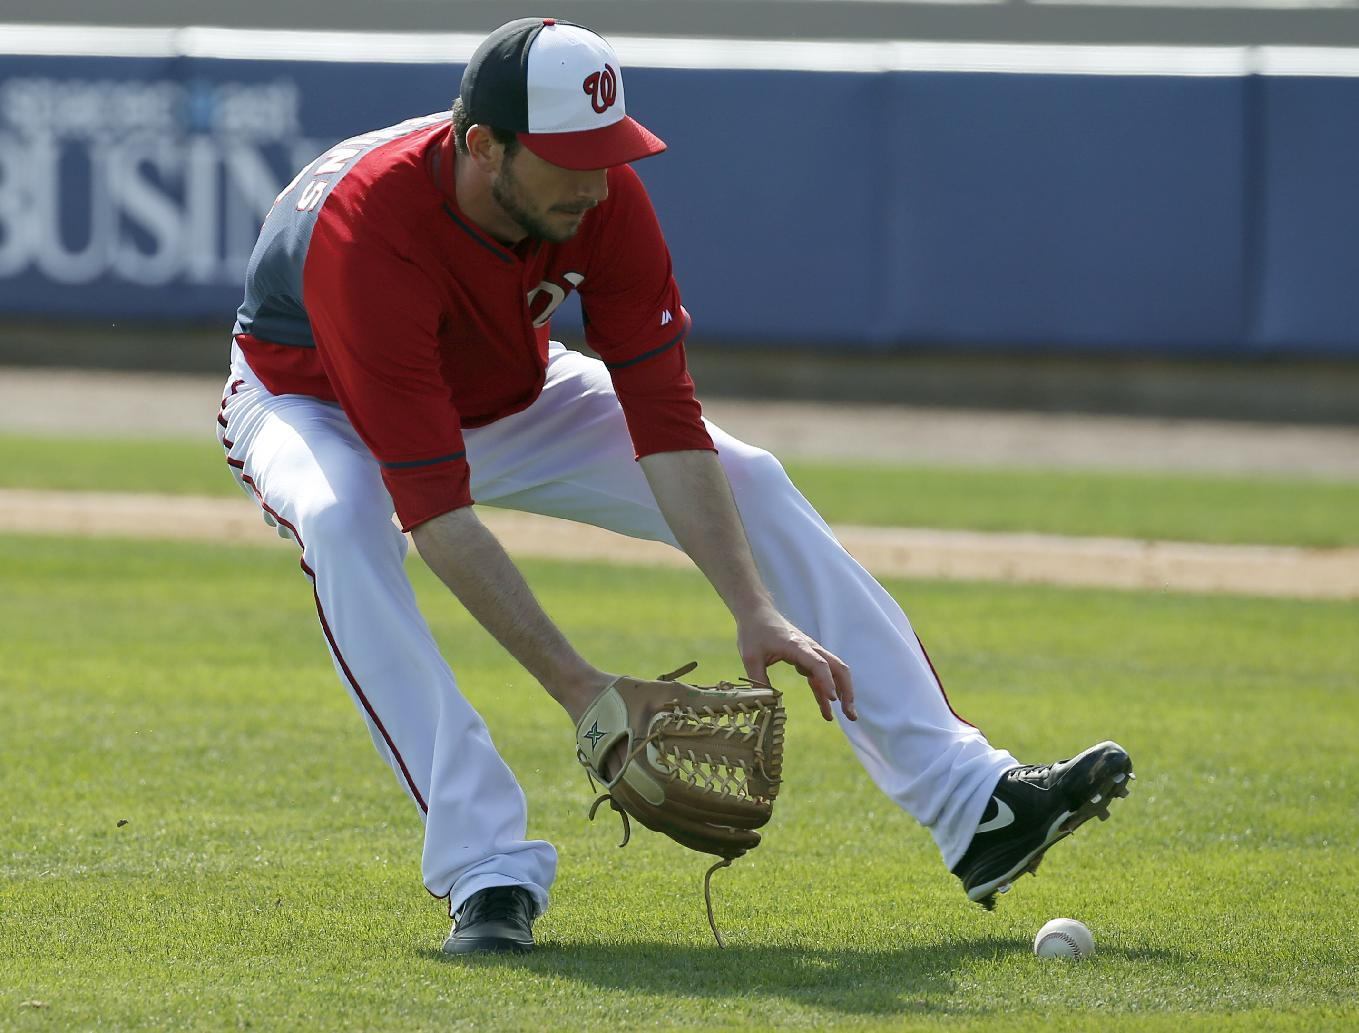 Washington Nationals relief pitcher Jerry Blevins grabs a ball hit by Houston Astros Jonathan Villar, who was out at first on the play, in the sixth inning of a spring exhibition baseball game, Friday, March 7, 2014, in Viera, Fla. The Nationals won 8-5